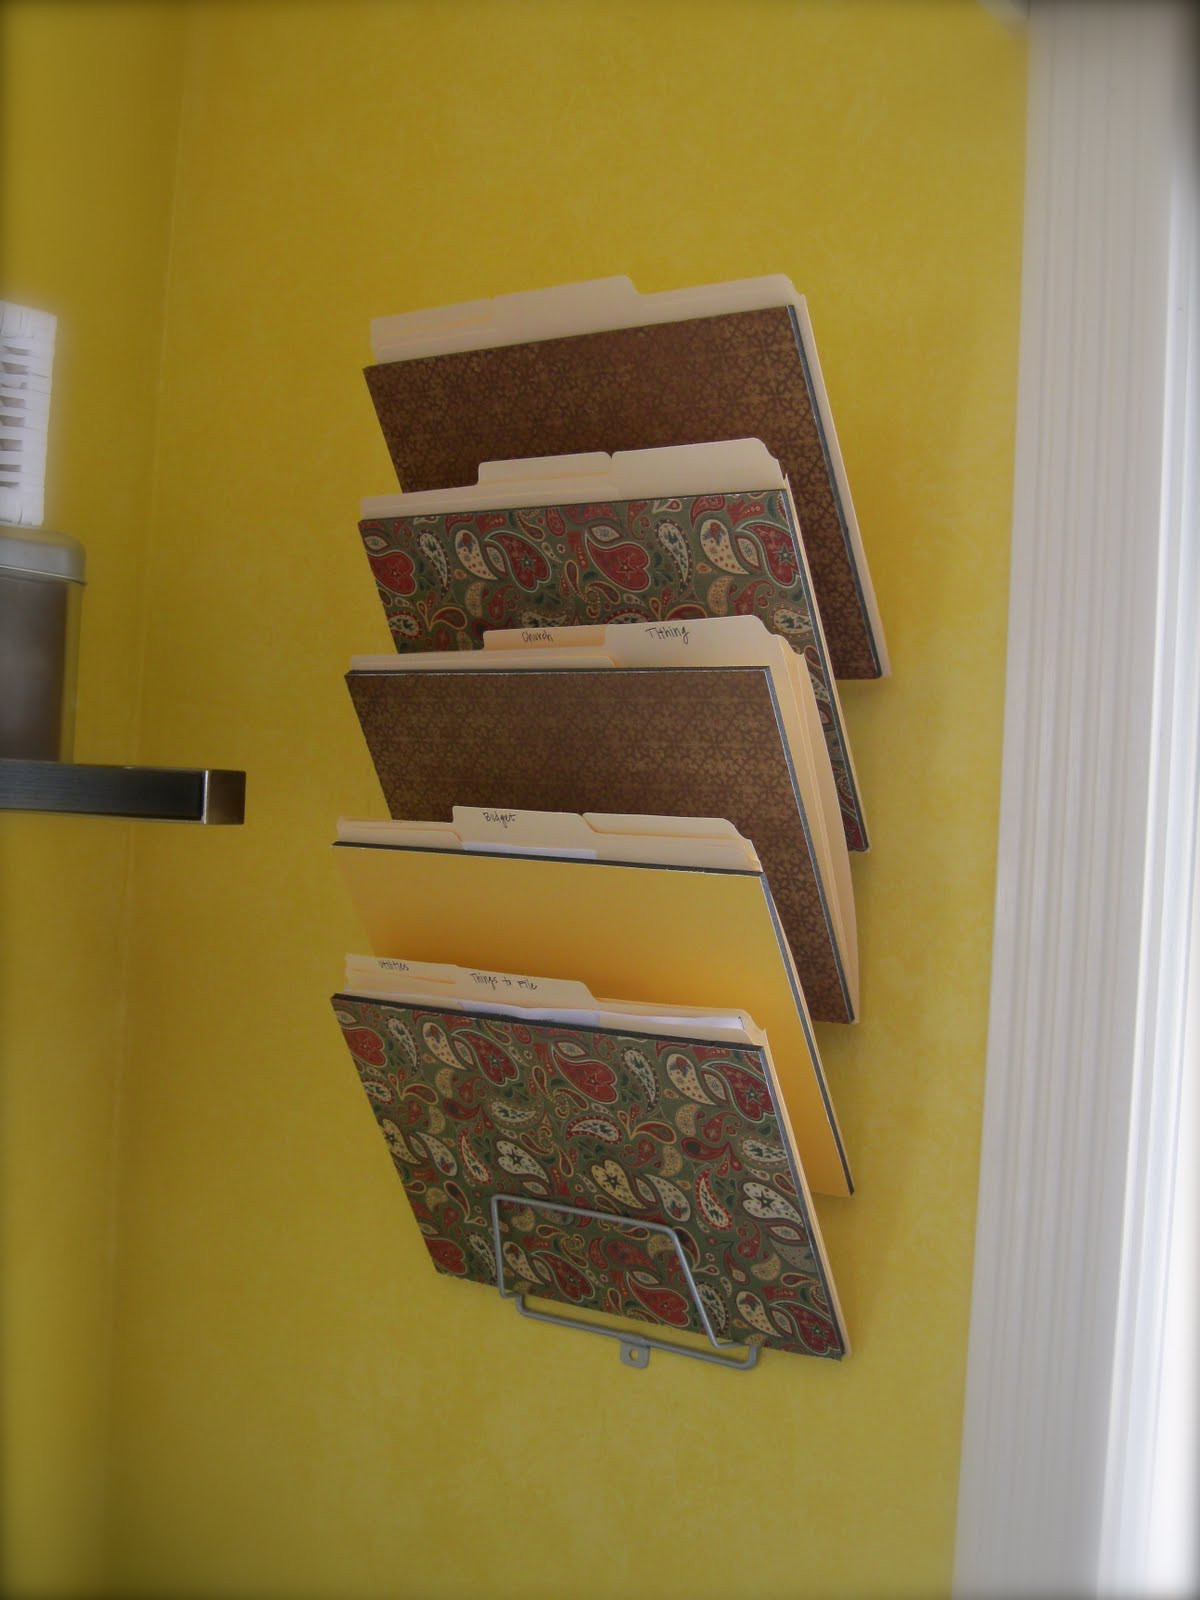 Best ideas about DIY Wall File Organizer . Save or Pin Creative And Simple DIY Wall Mounted File Organizer For Now.